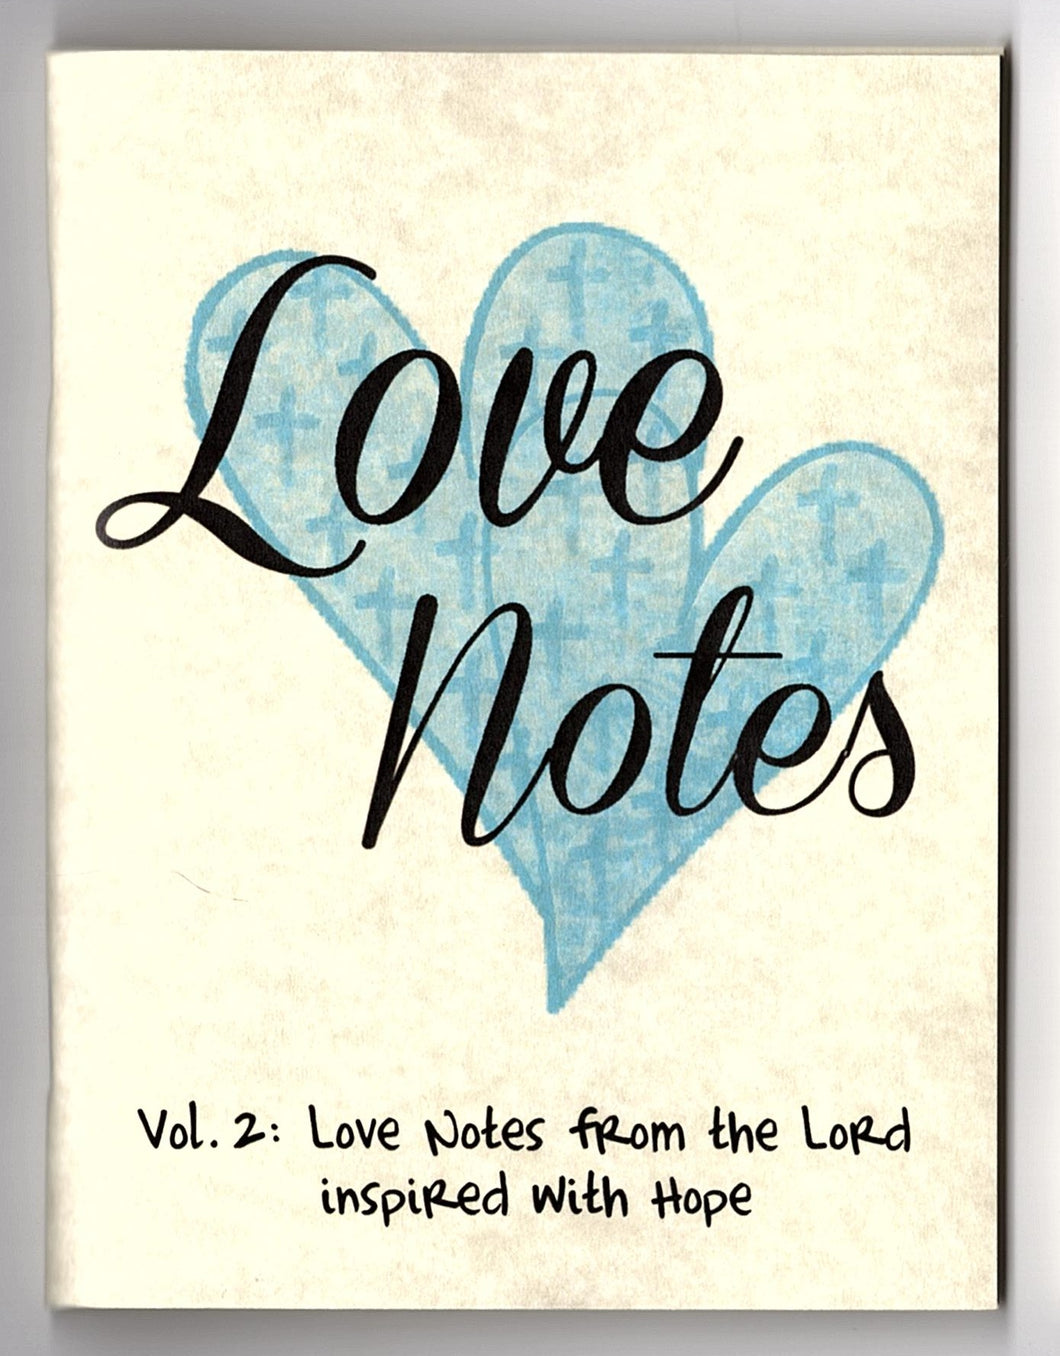 Love Notes Vol. 2: Love Notes from the Lord inspired with Hope